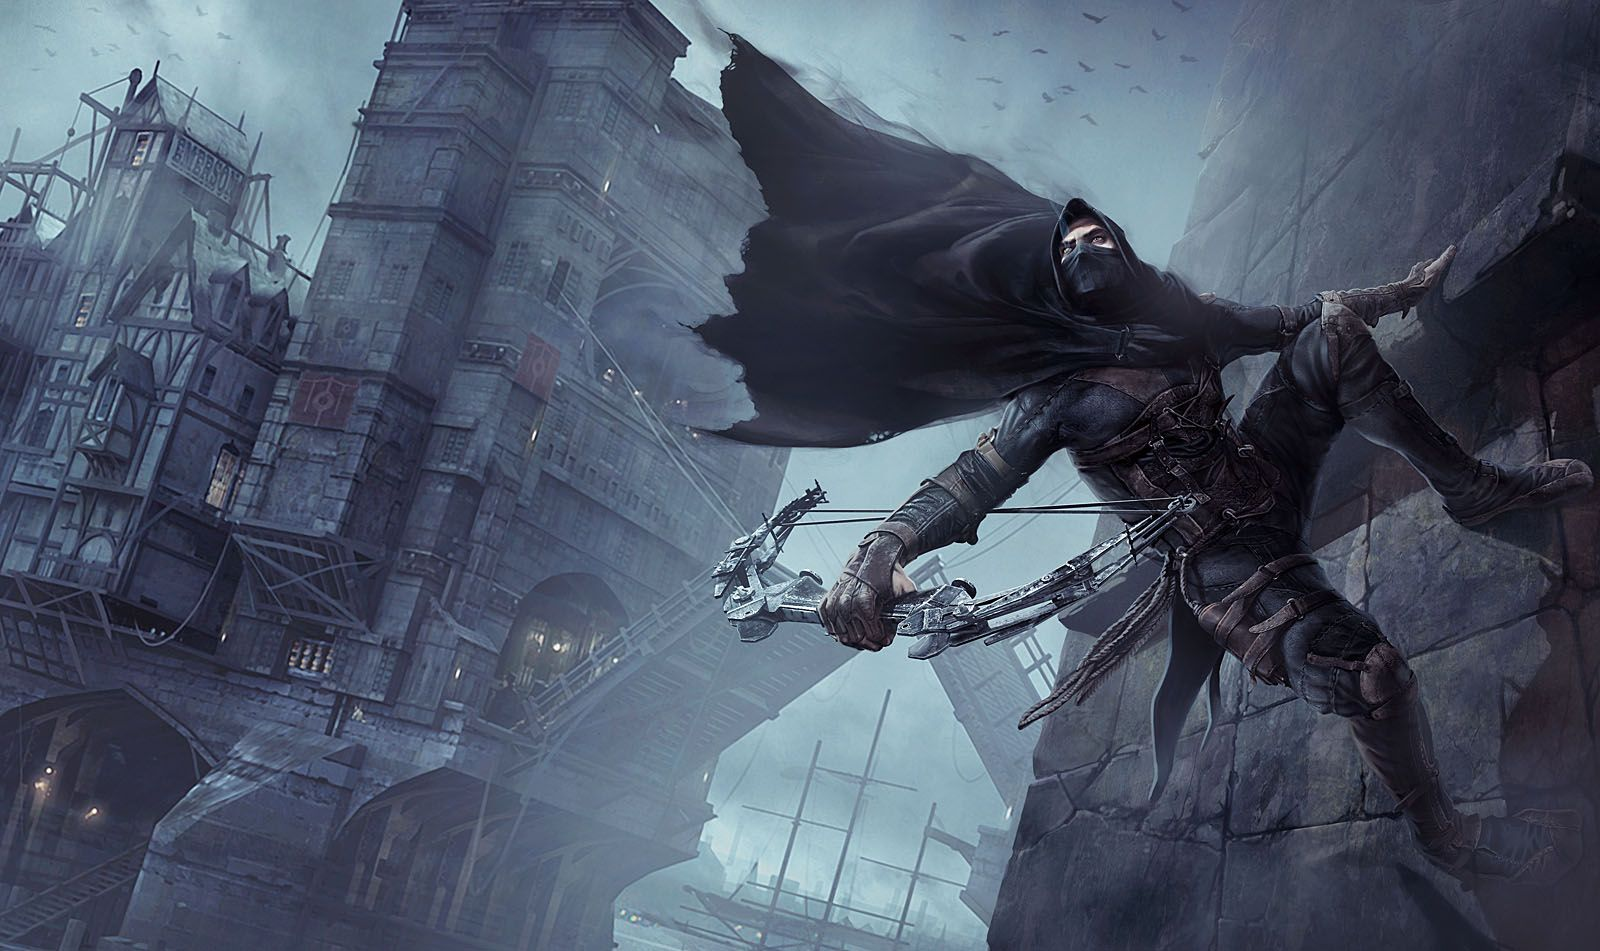 Thief Video Game Art By Arman Akopian Background